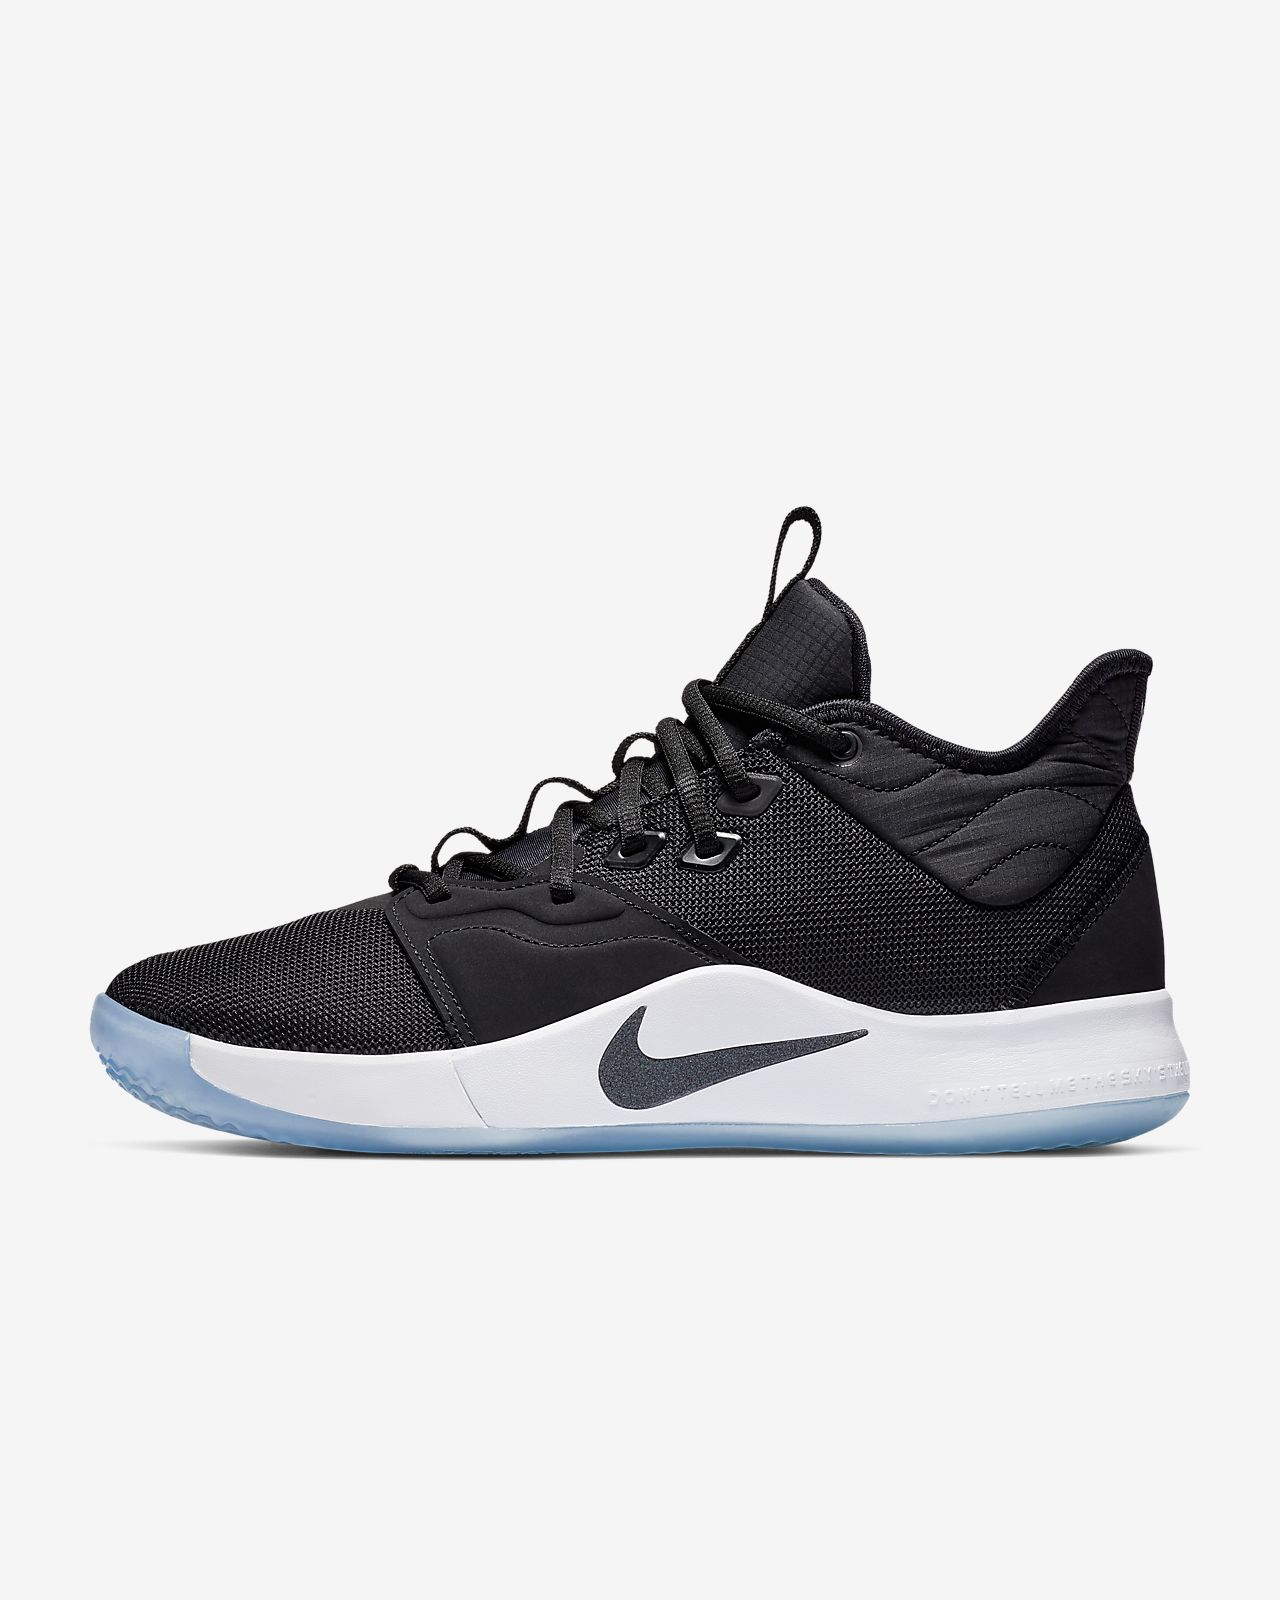 separation shoes c006a f9f4e ... Chaussure de basketball PG 3